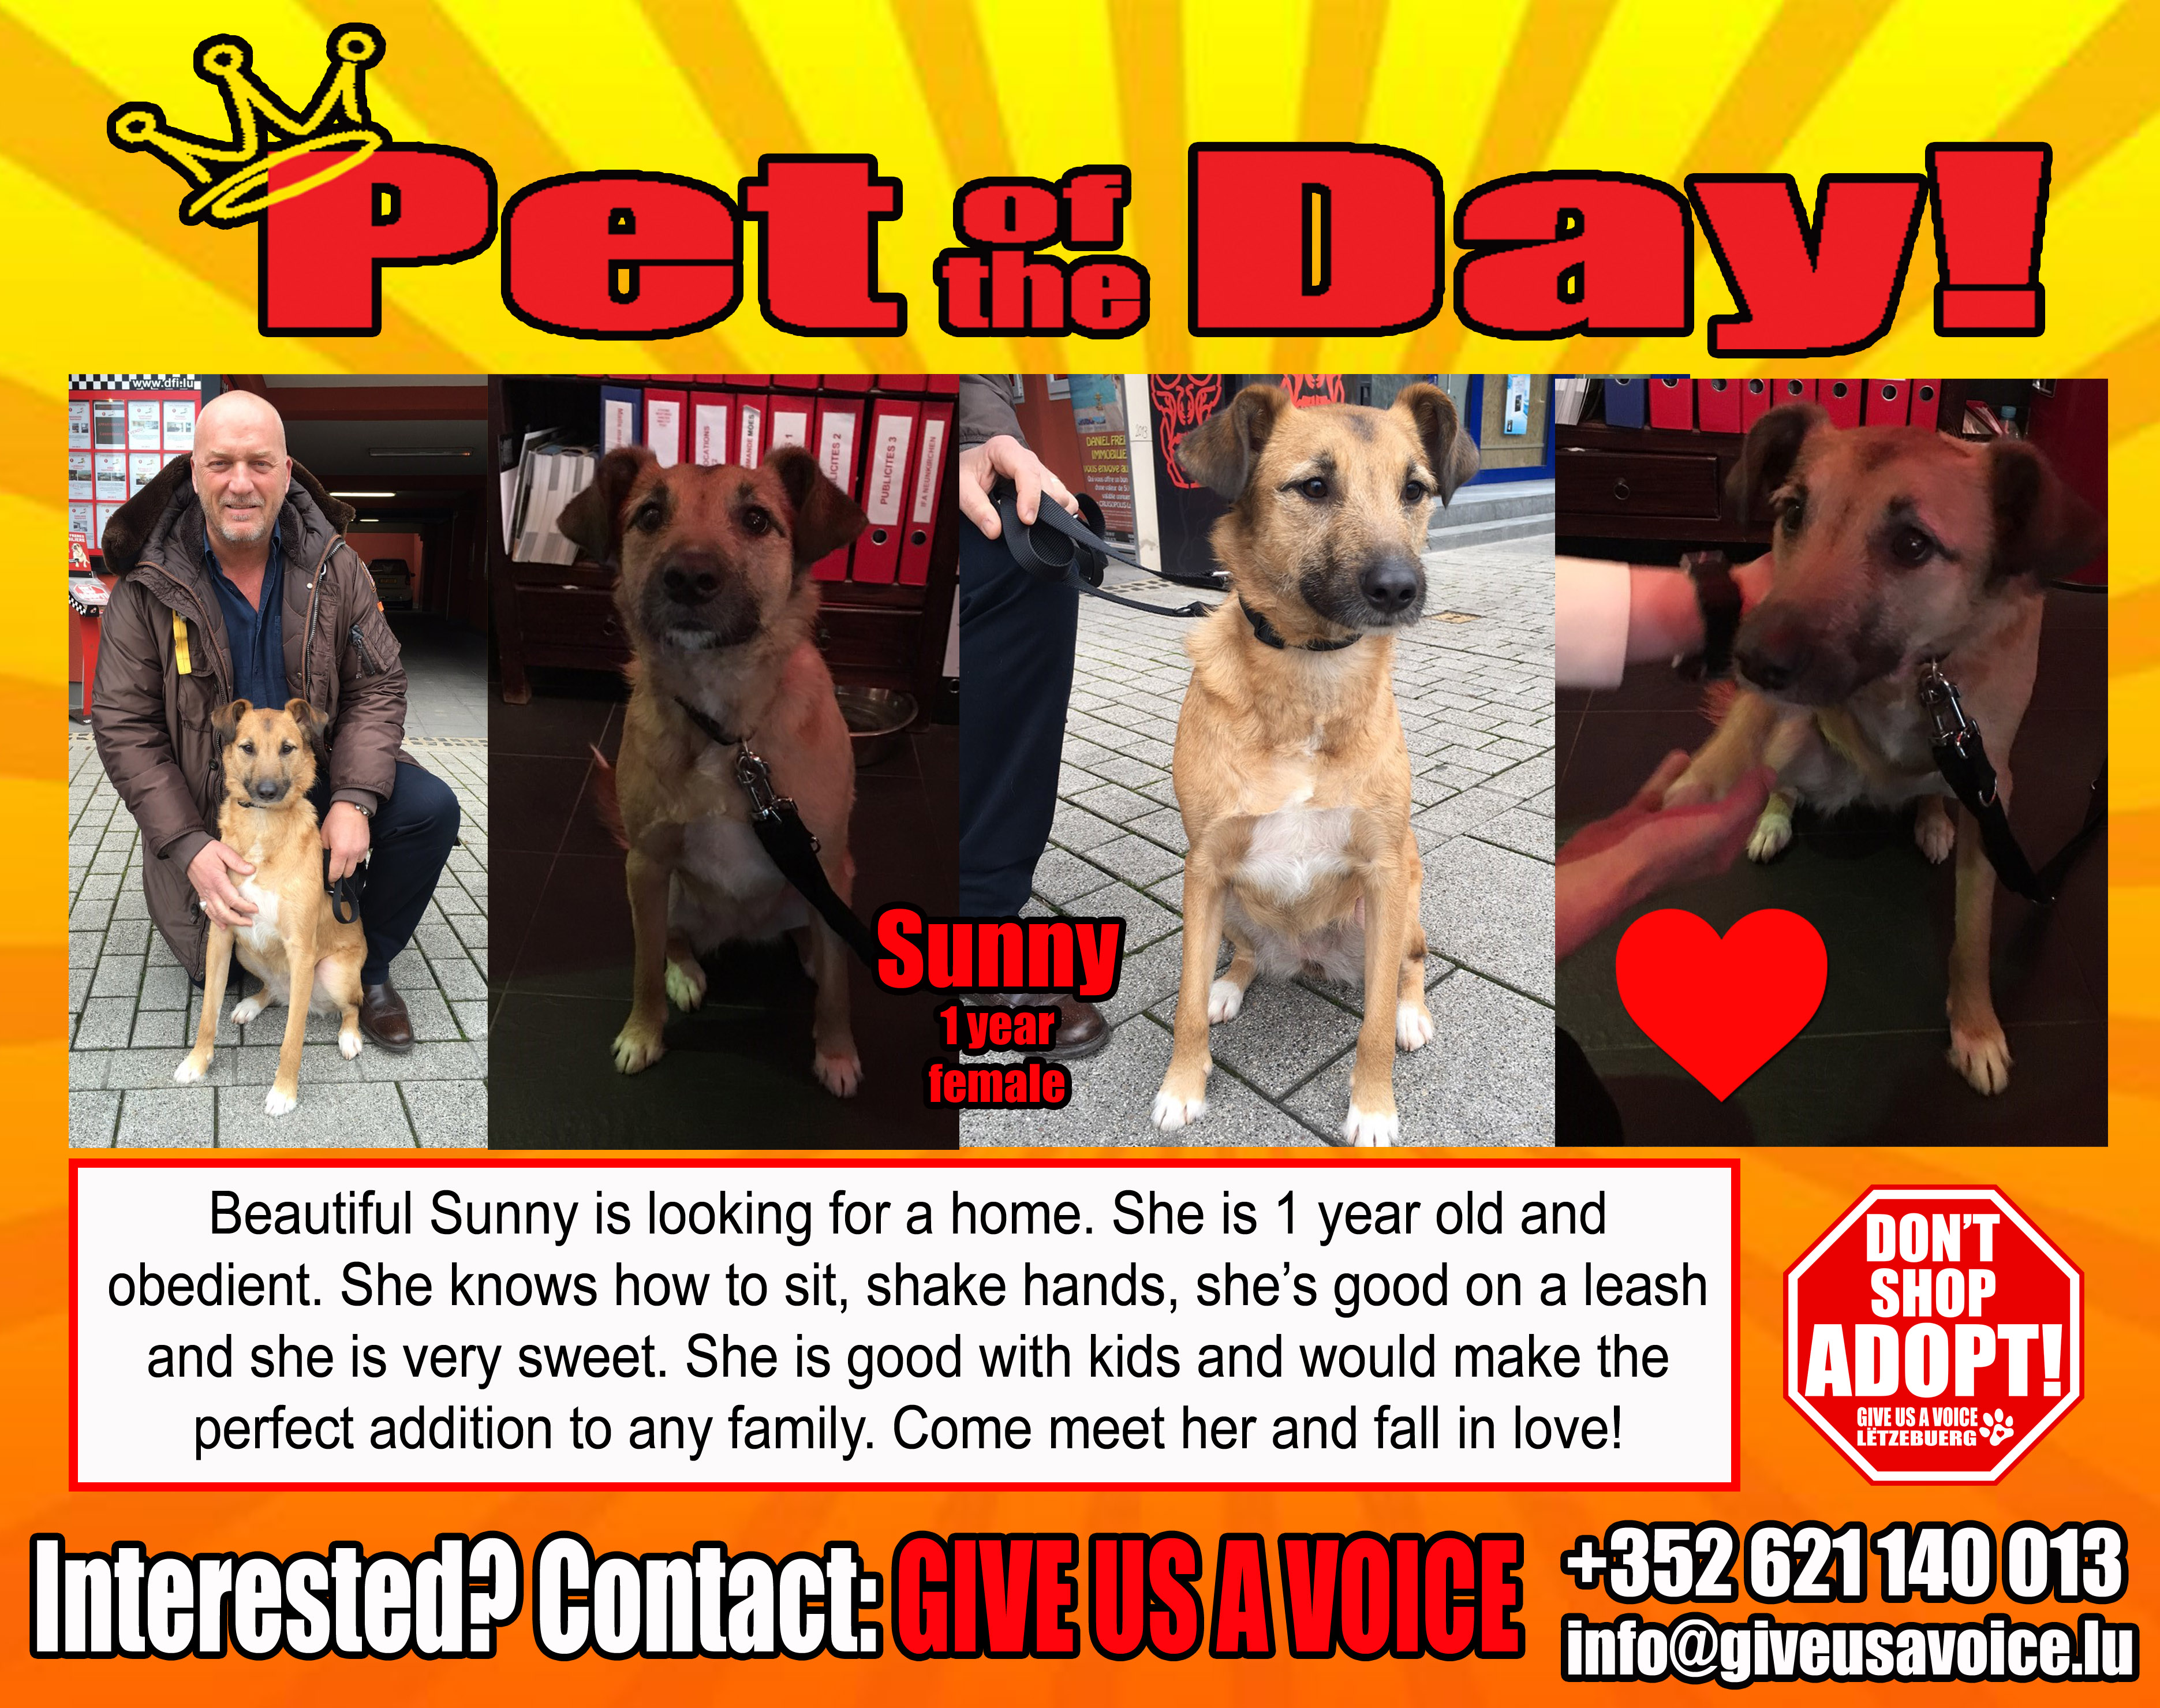 04-29-16 Pet of the Day